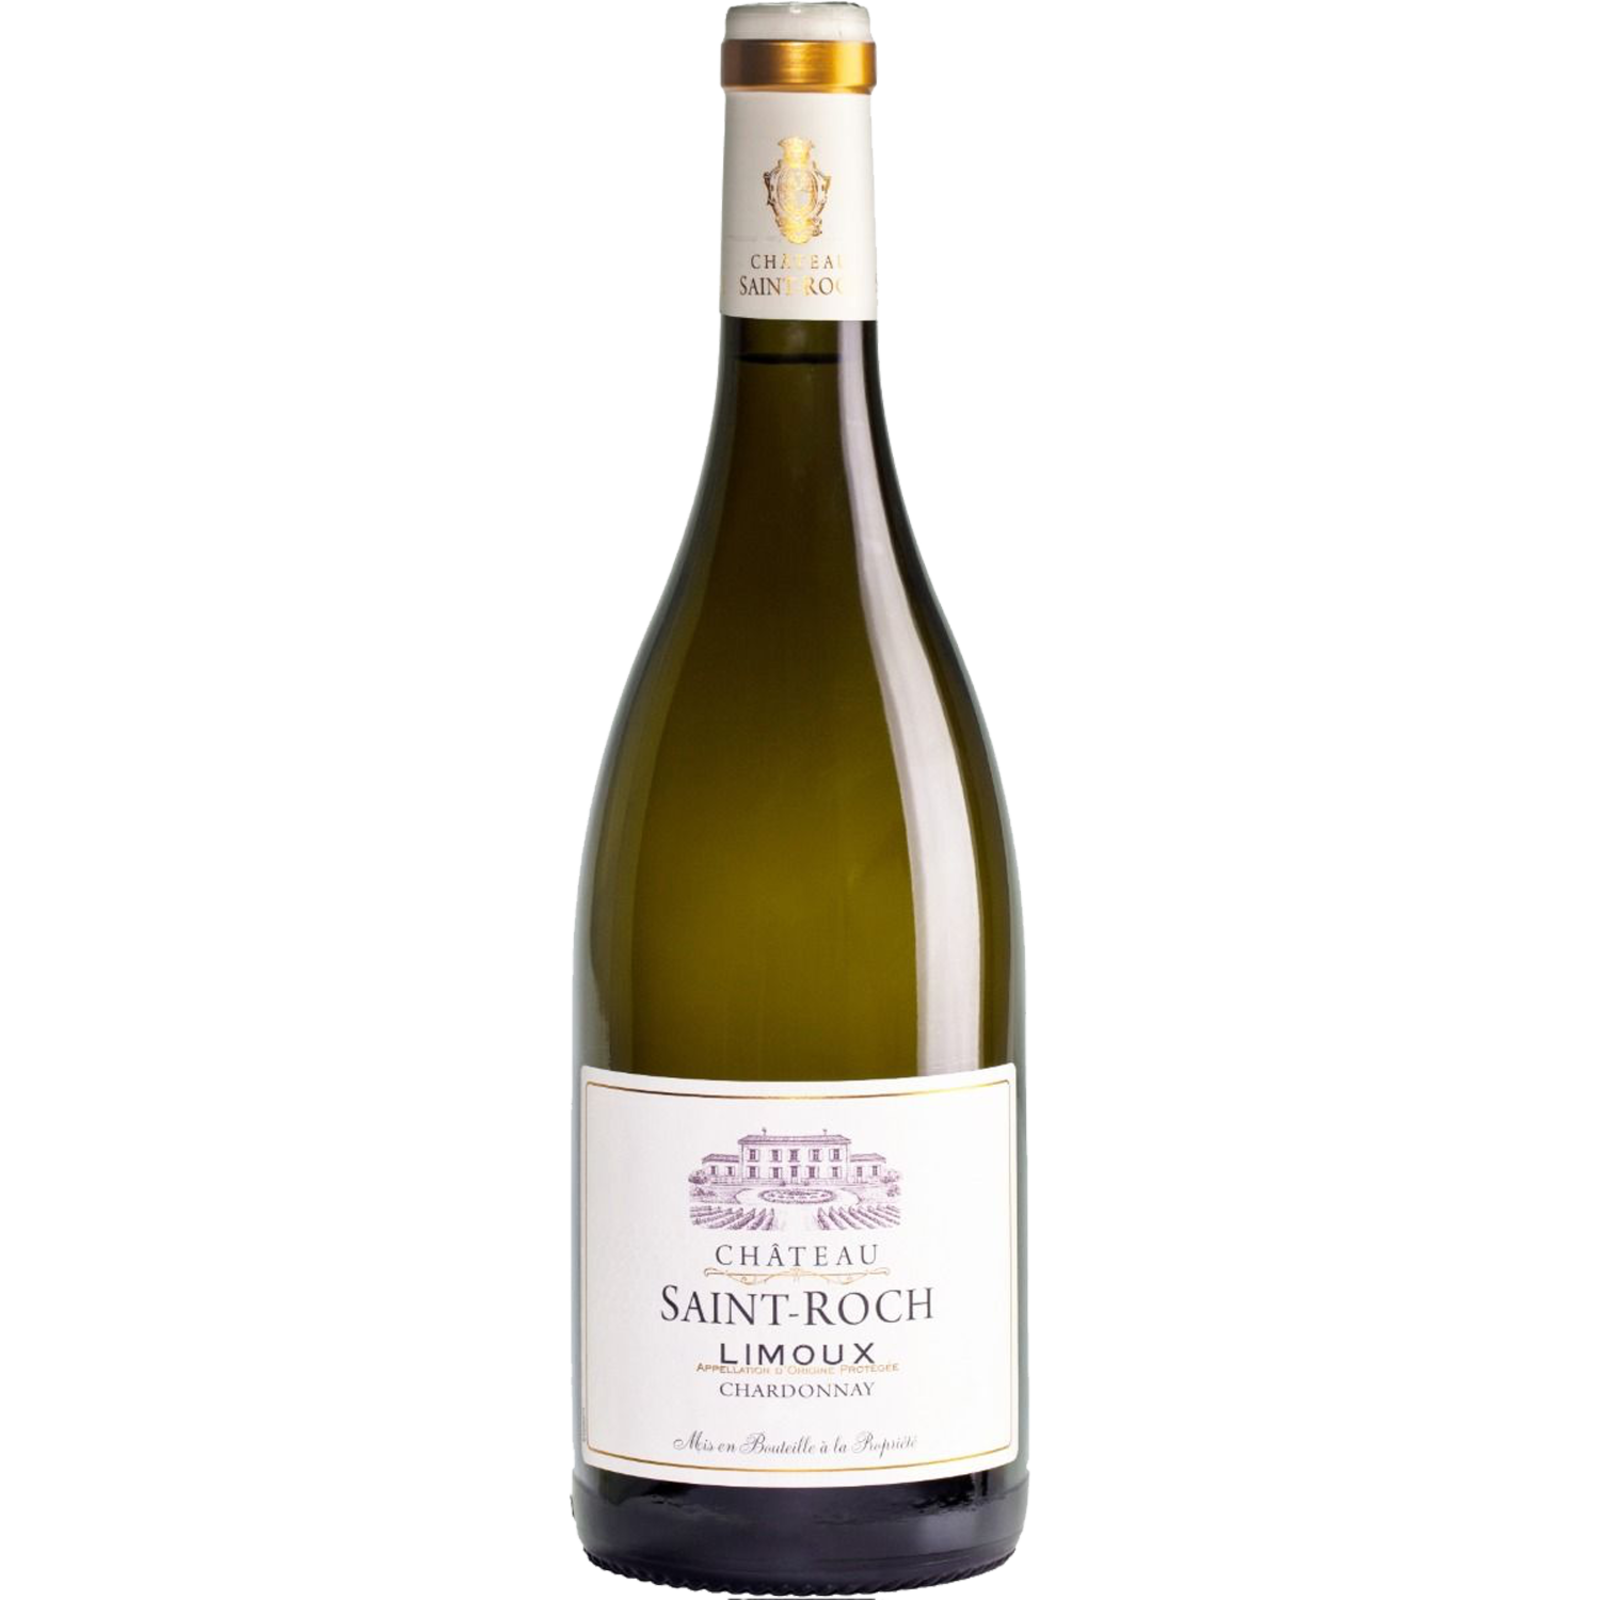 Chateau Saint Roch Chateau Saint Roch Chardonnay Limoux 2020